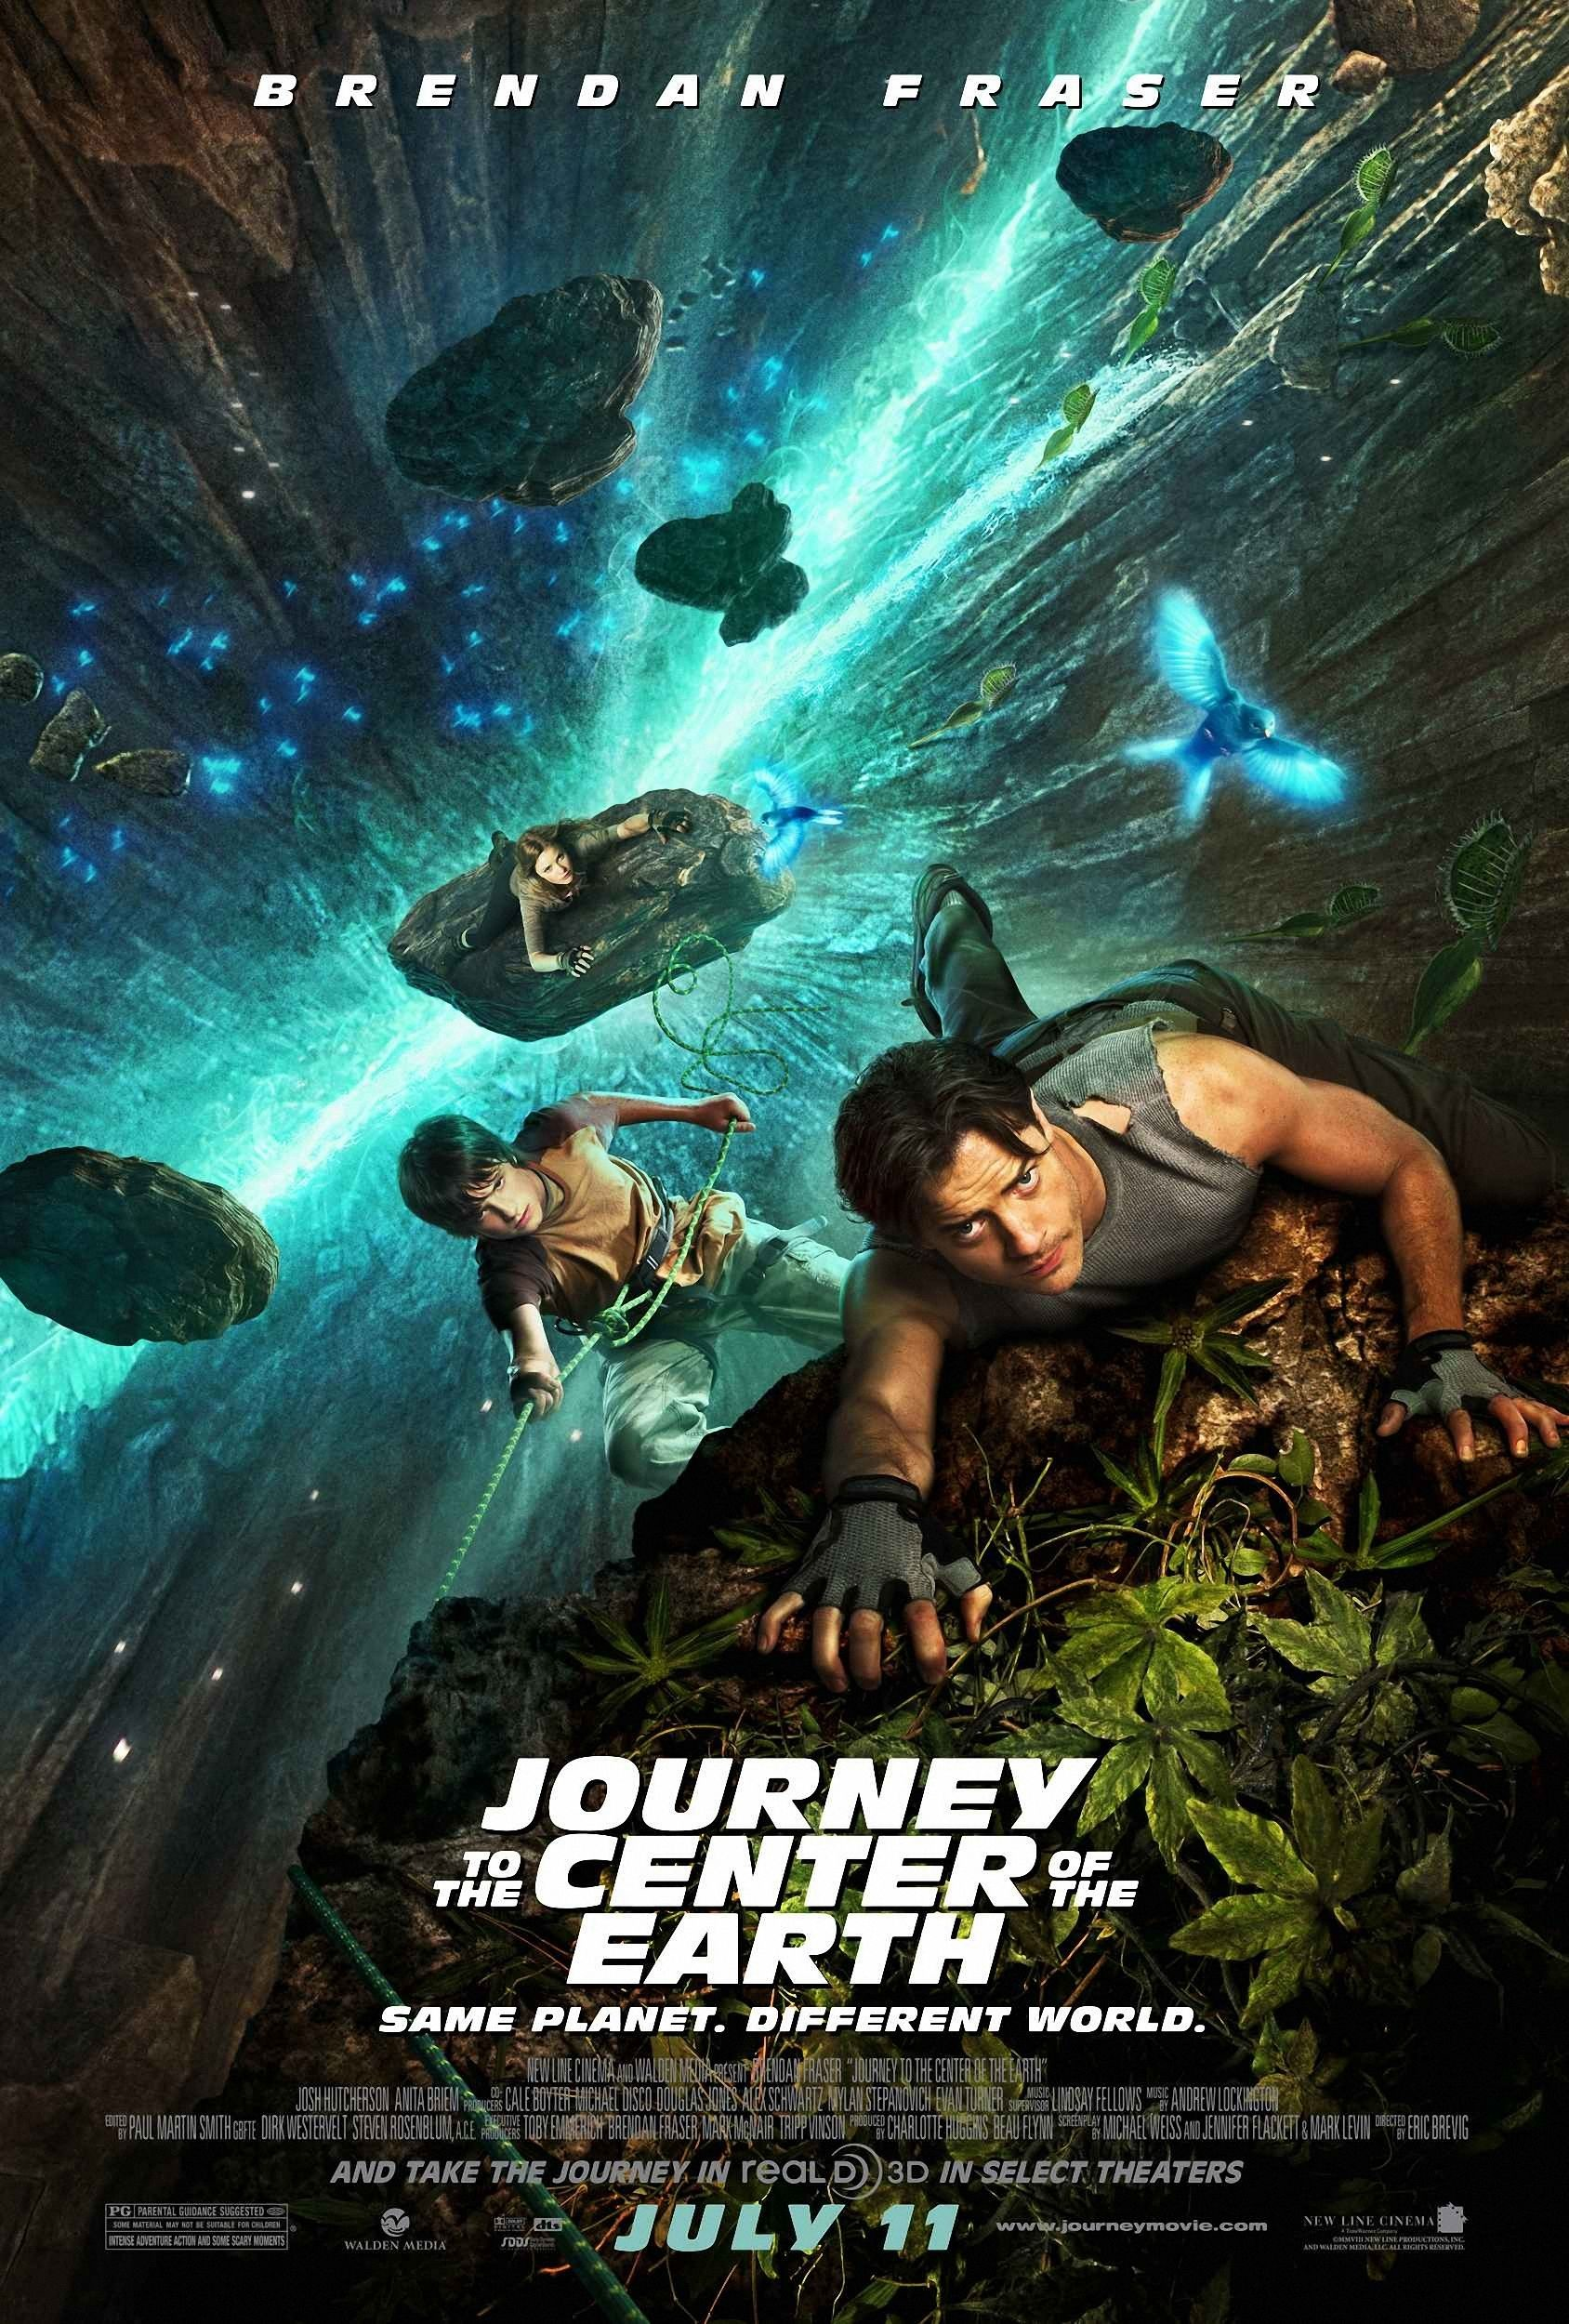 Journey to the Center of the Earth (2008 theatrical film)